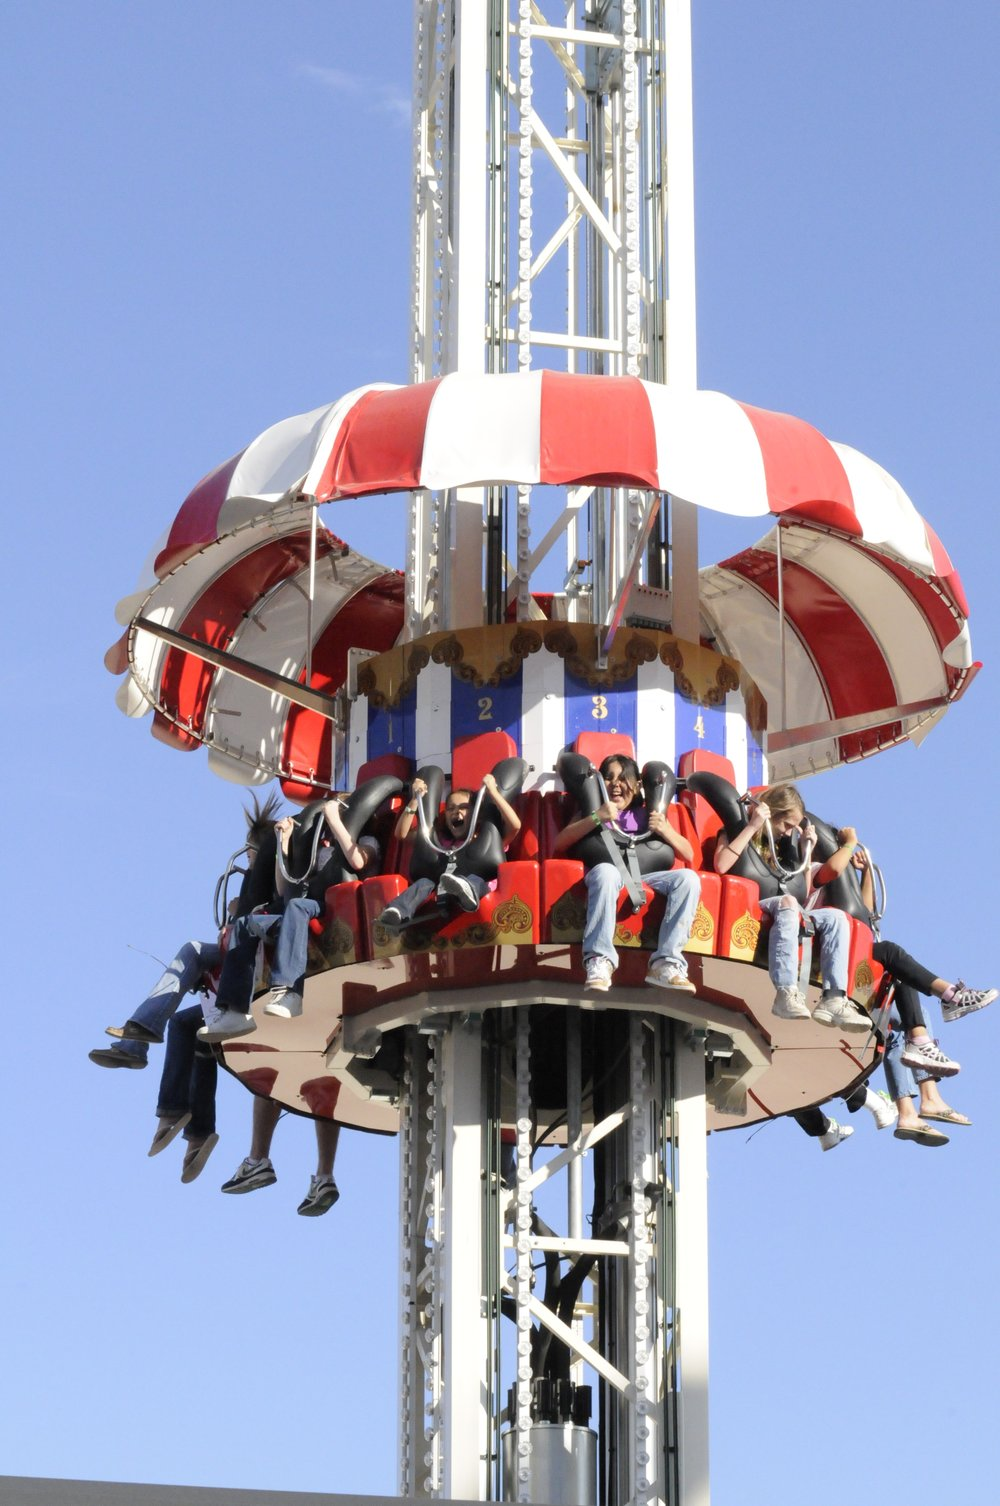 Extreme Group Trip - Minimum 15 Participating Group Members$14/person for 4 hours$16/person for 5 hoursor $20/person for All DayUnlimited Access to All Attractions: Switchback Roller Coaster, Dizzy Toucan, Bungee Trampoline, Parachute Drop, Rock-Climbing Wall, Silo Climb, MaxFlight Simulator, Jungle Playland, Video Games, Go-Karts, Mad Raft*, Viper*, and Viper's Tail*.Add Pizza for $5 per person (2 slices of pizza and a medium drink each).One adult wristband will be provided free for every 10 children/group members to participate. Other adults (18+) may come in for free to watch. Additional adult bands are the same price as the children's bands for those wishing to participate.For further information or to book a group, please call (830)217-3565.*Water rides available March-September, weather permitting.